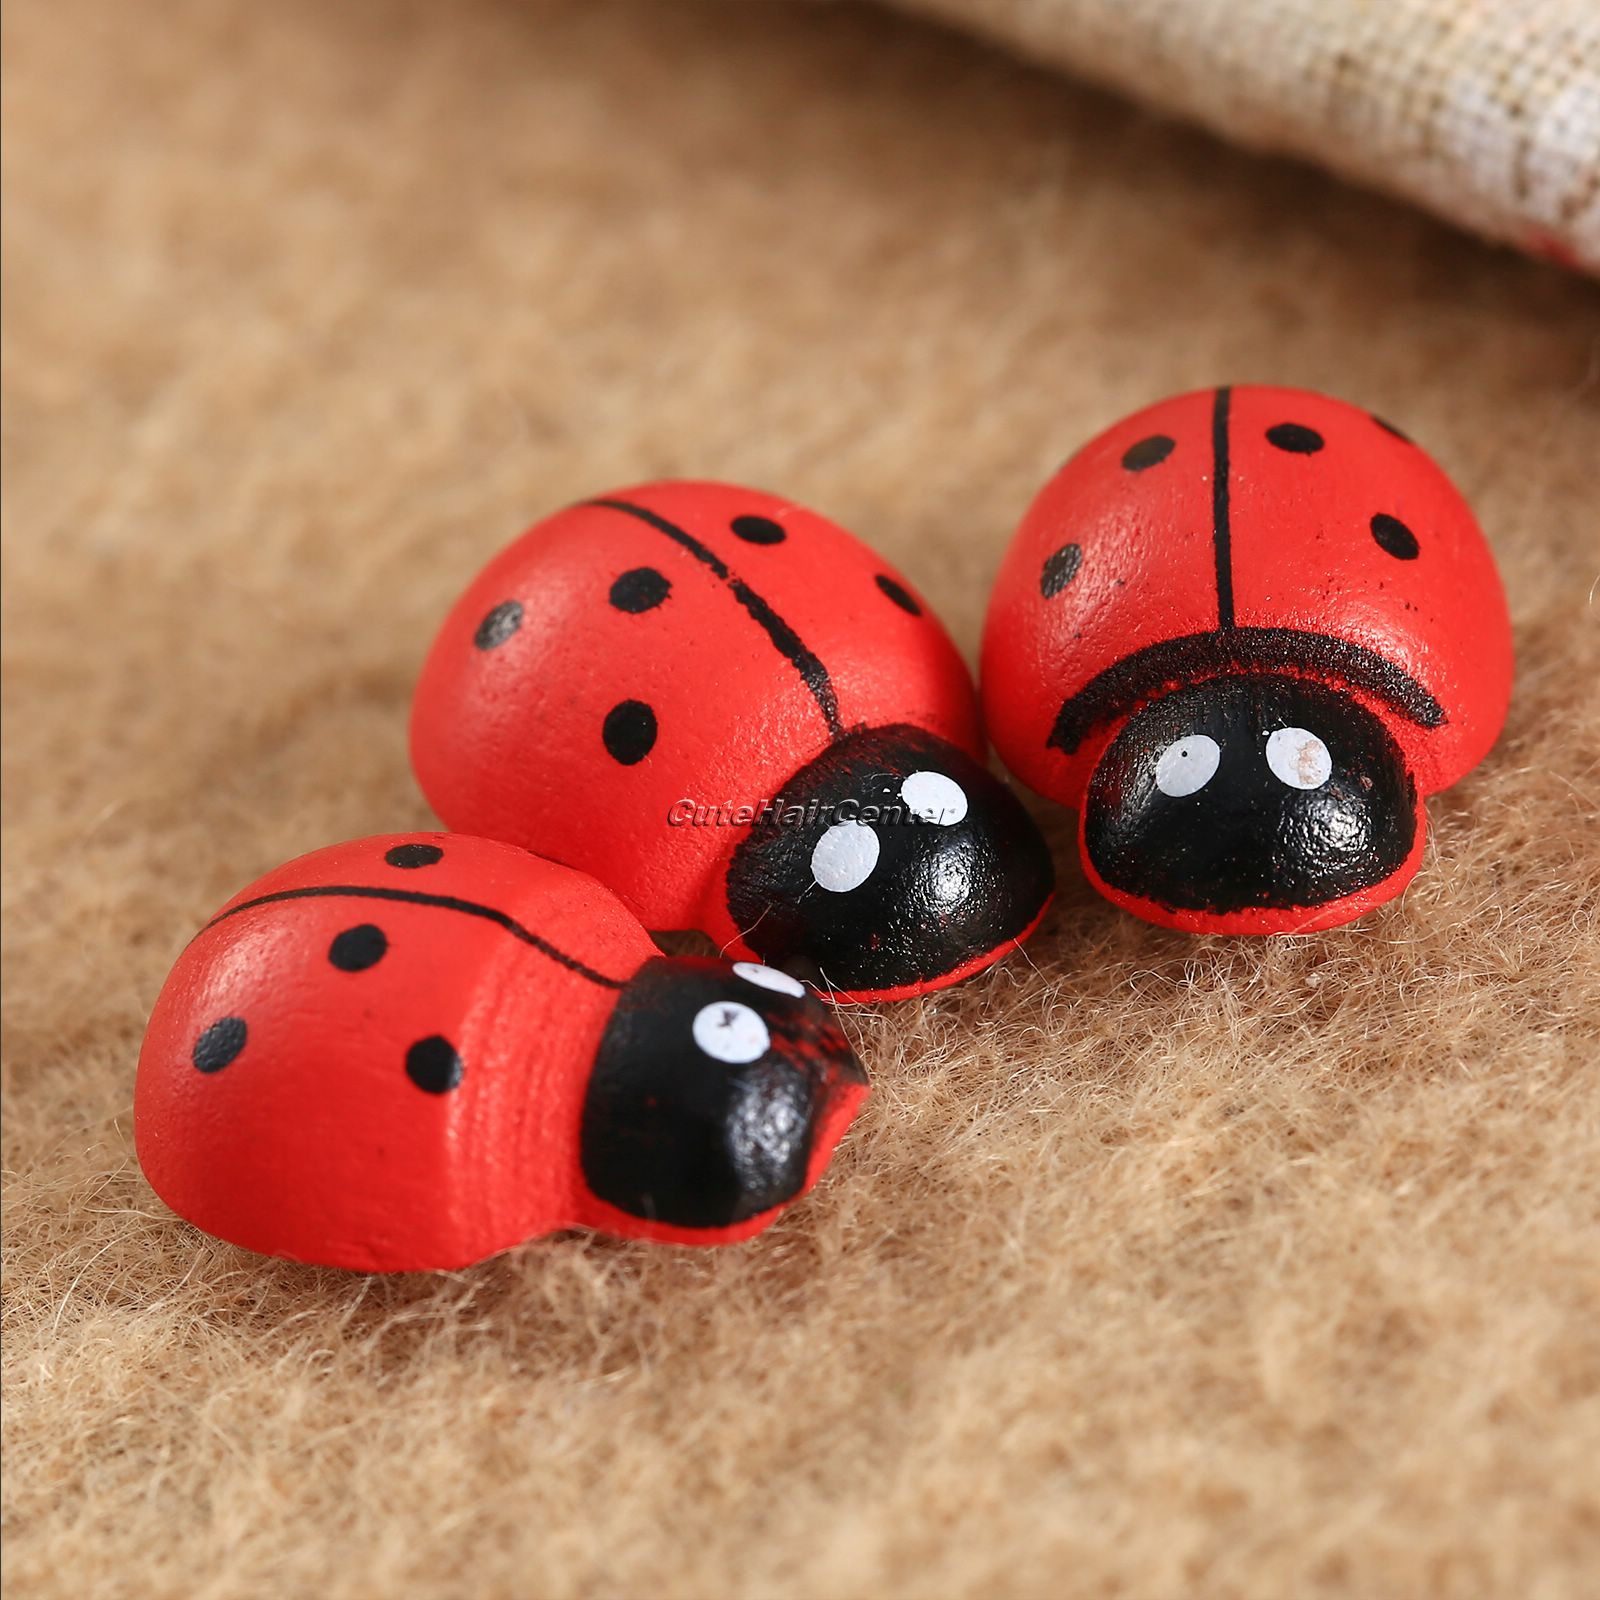 Red 3D Wooden Ladybug Stickers Scrapbooking Buttons DIY Crafts 19x14x7mm 50Pcs